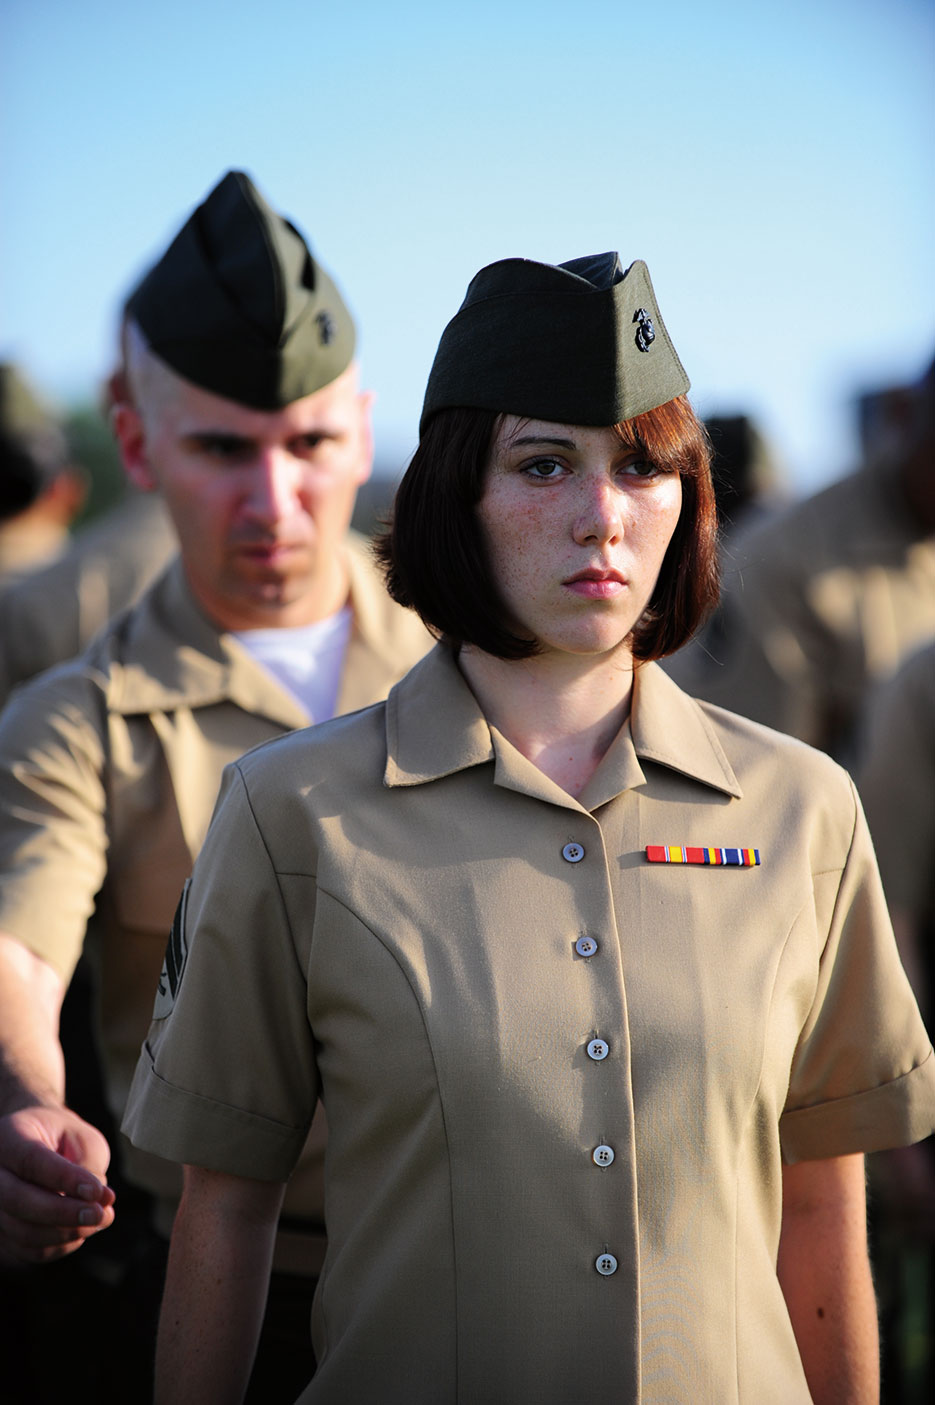 Instructor inspects Marine's uniform during 16-day Corporals Course, U.S. Marine Corps Enlisted Professional Military Education course, which was taught for first time at Dyess Air Force Base, Texas, August 5, 2010 (U.S. Air Force/Domonique Washington)